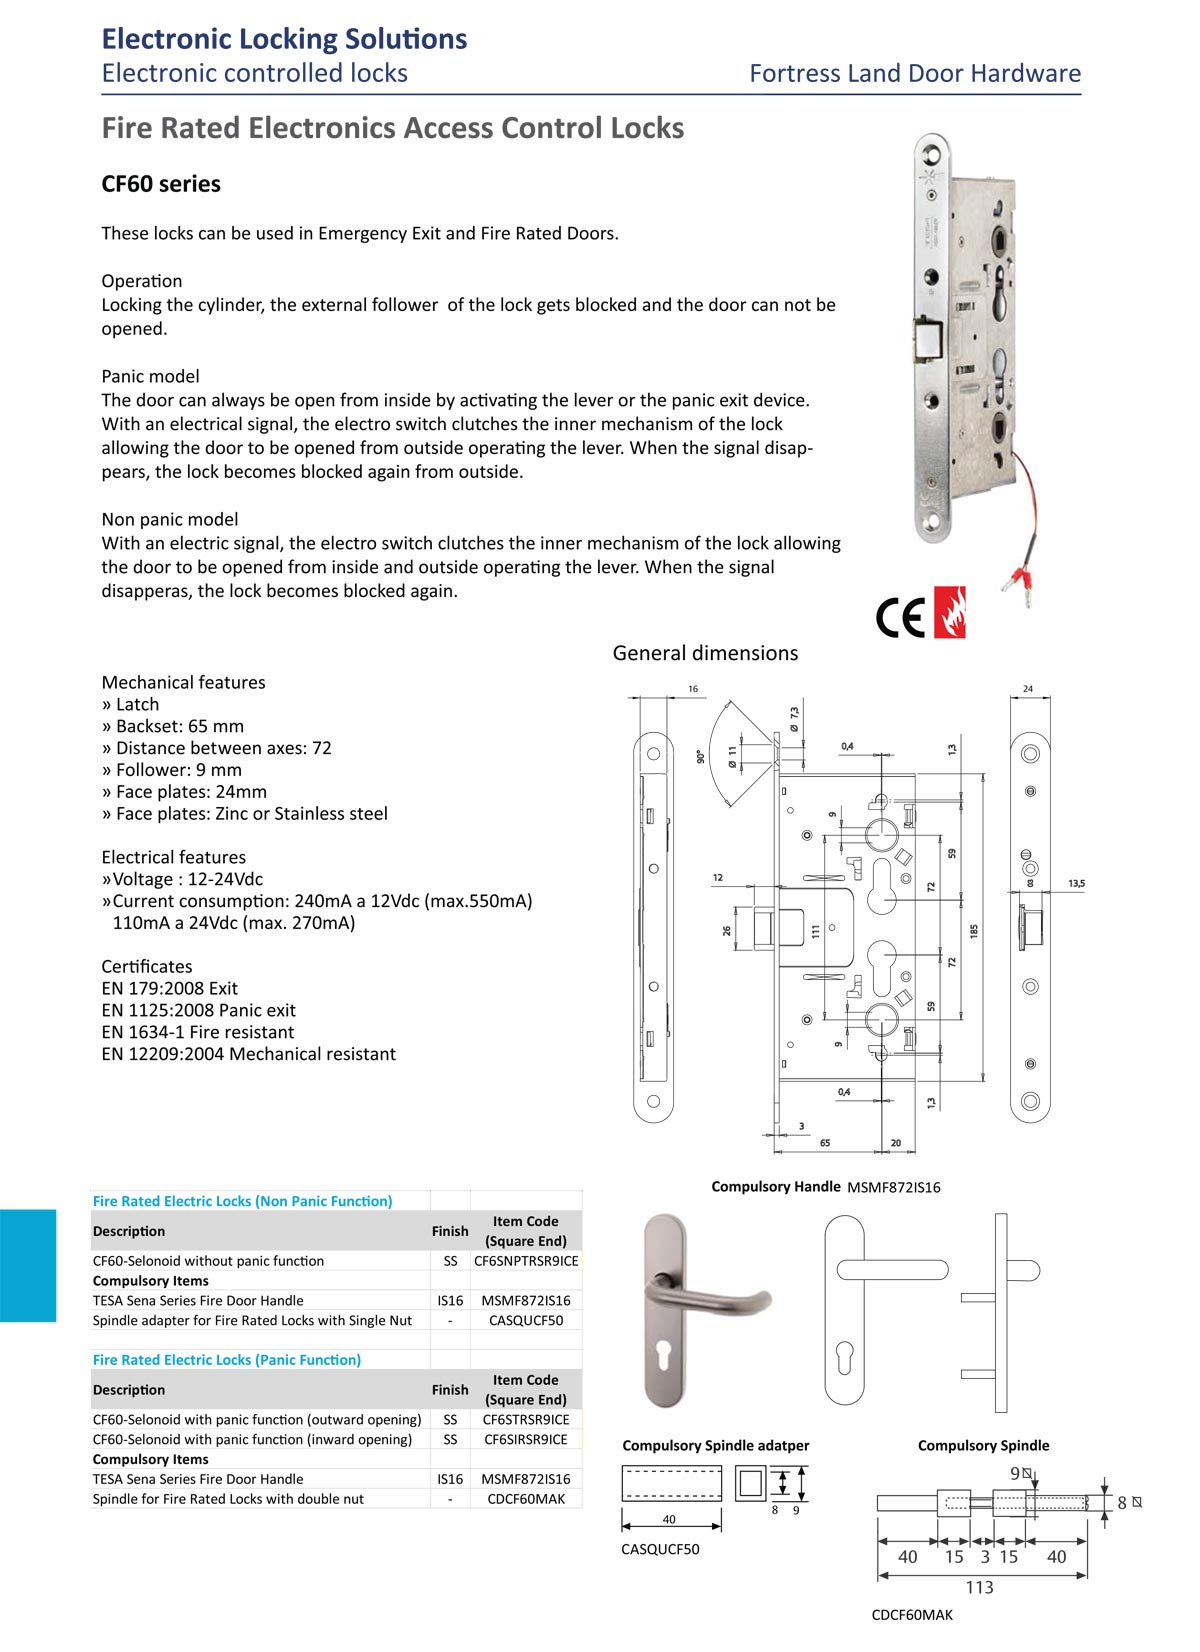 abloy electric lock, abloy el560, abloy electric lock, electronic controlled lock, emergency exit door lock, high security access control lock, double swing doorlock, electric strike, fire rated electric lock, Fortress Land Security Company Yangon, Myanmar